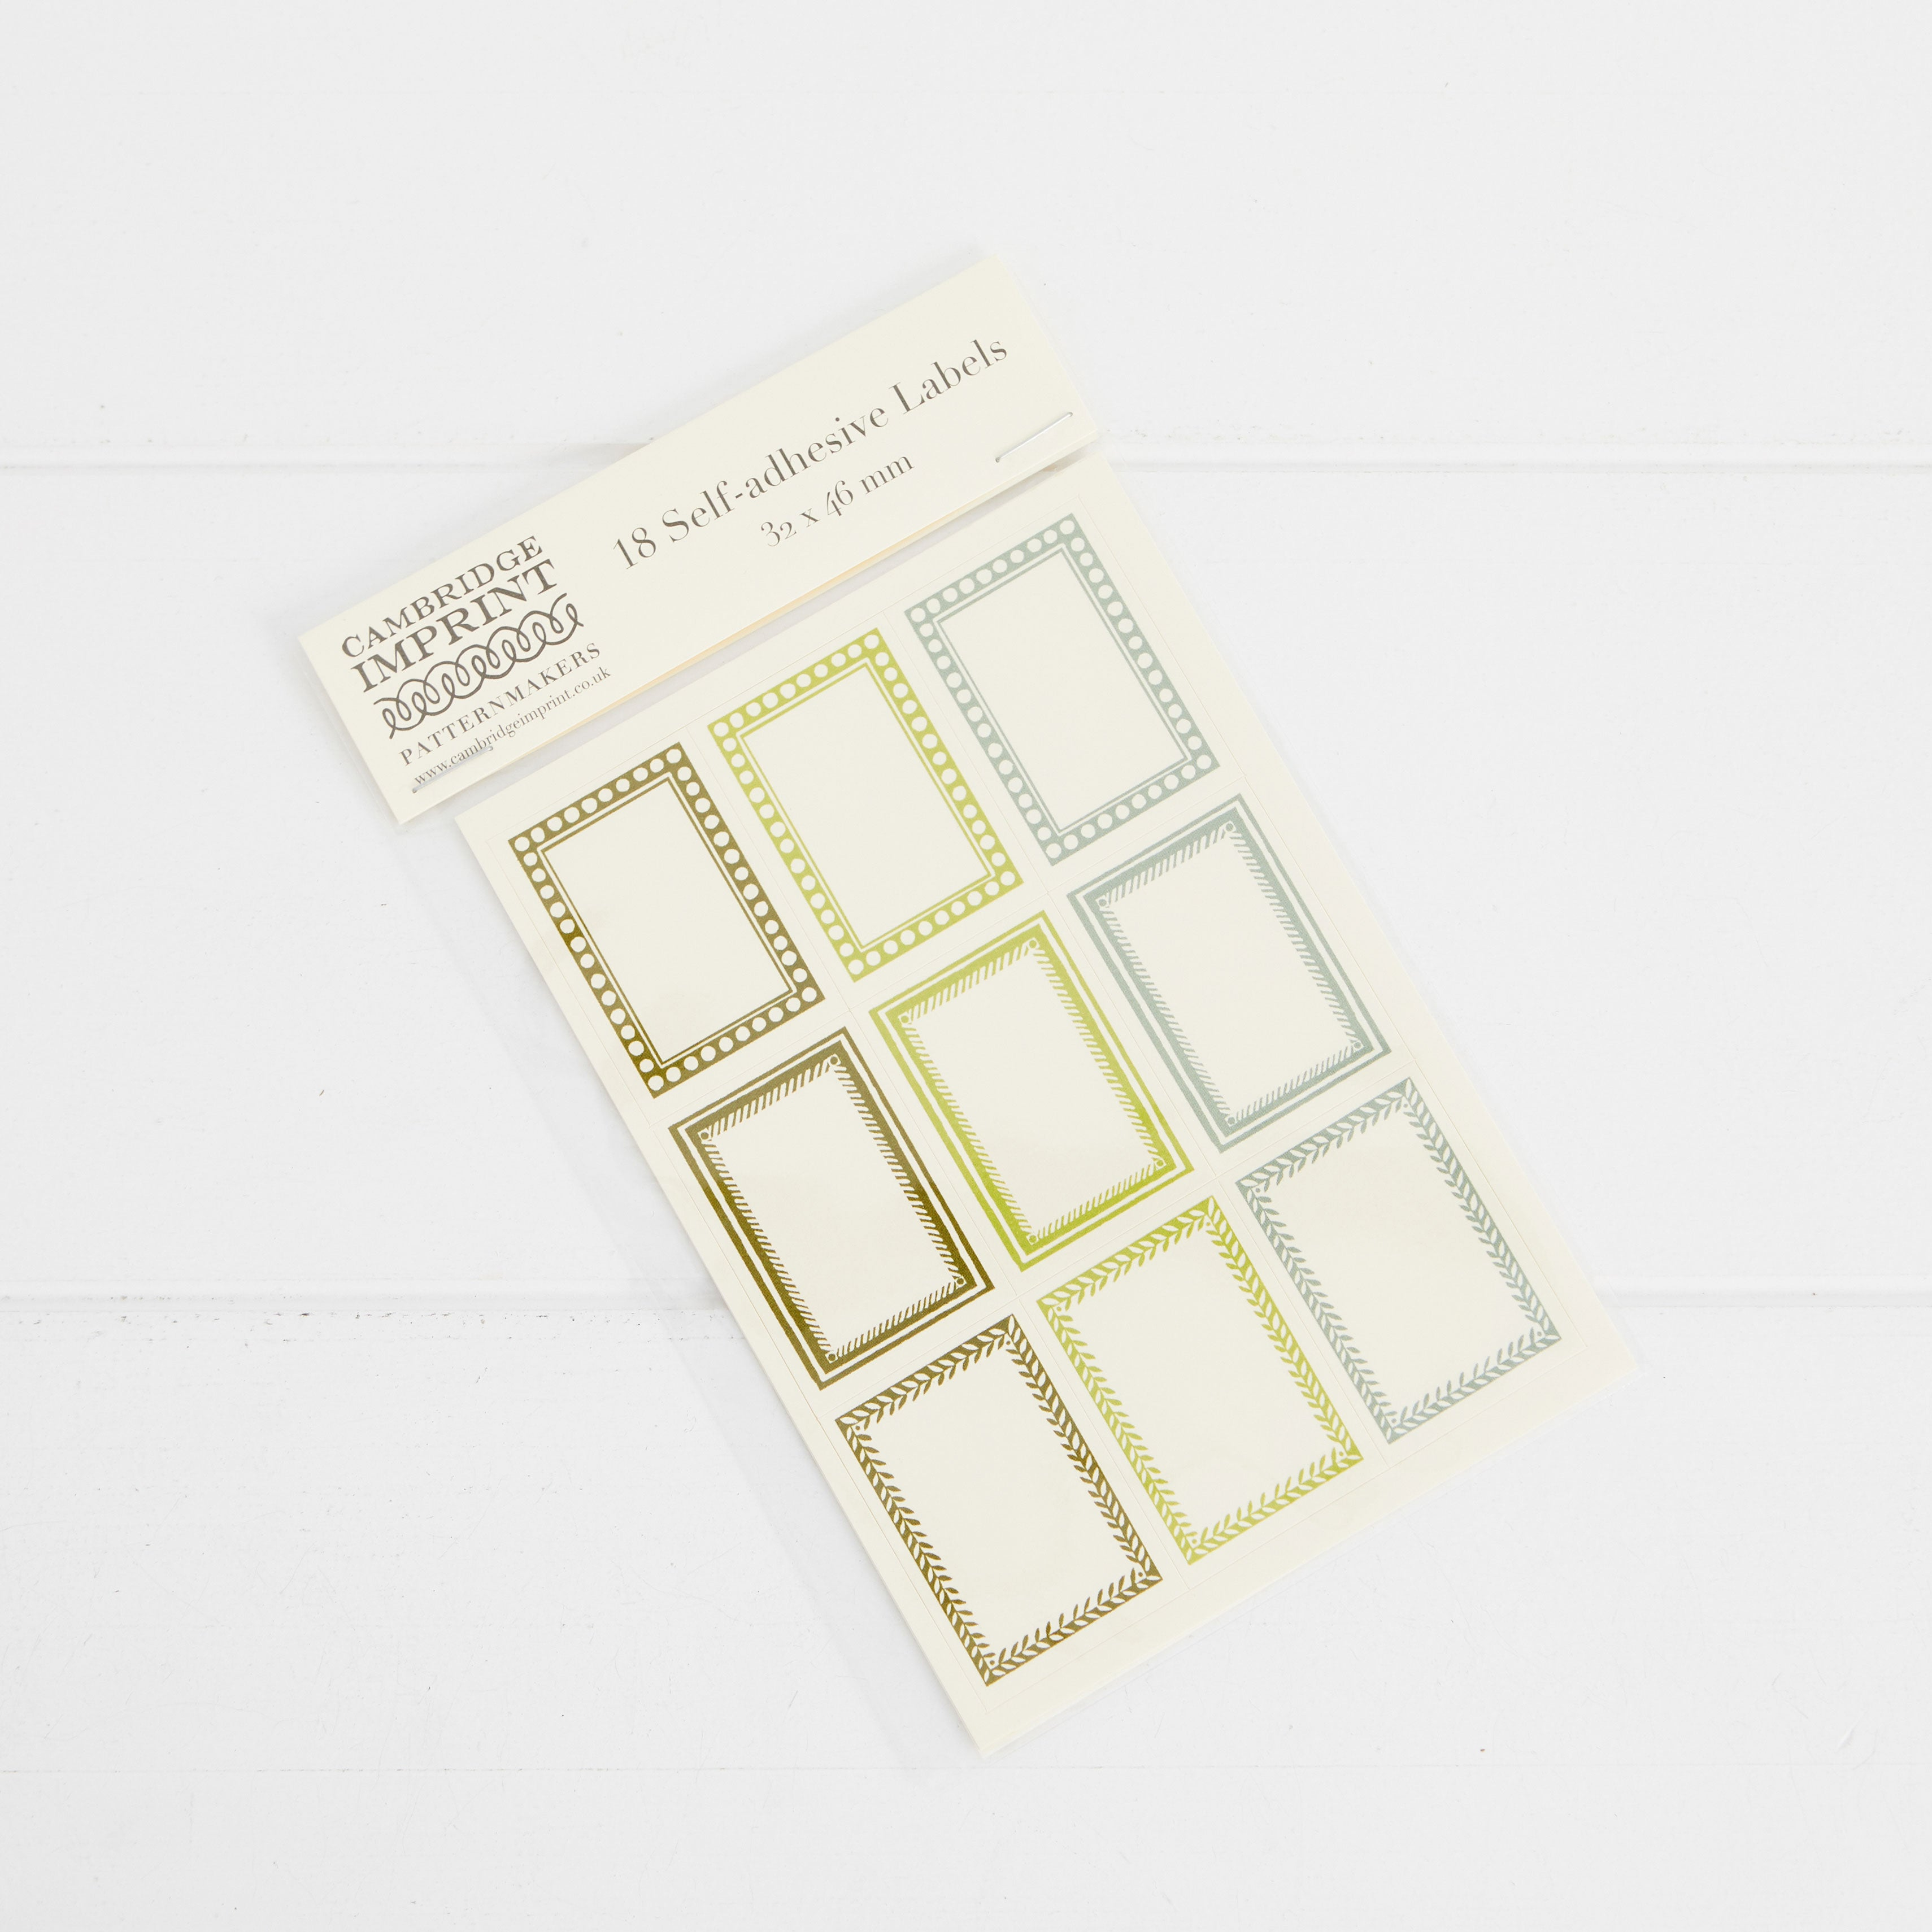 Cambridge Imprint Pack of 18 Small Self-Adhesive Labels 3